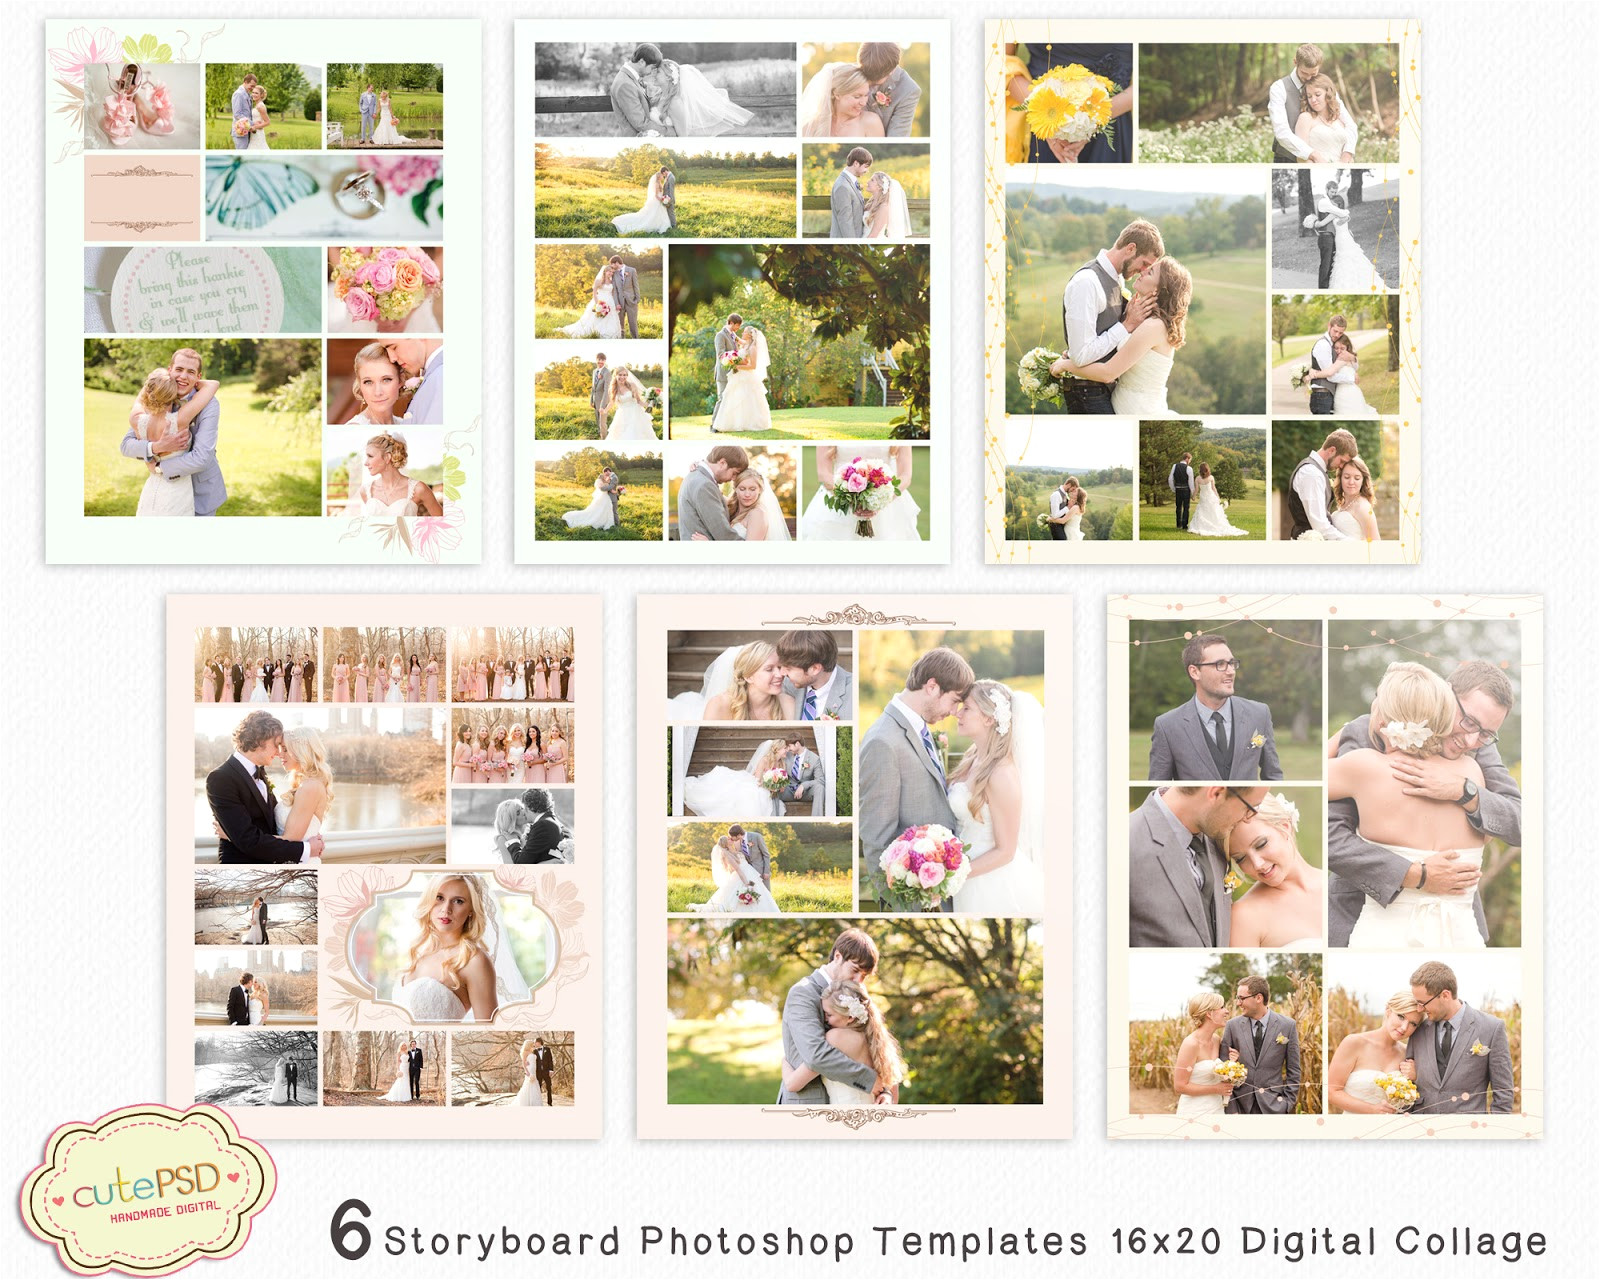 6 storyboard photoshop templates 16x20